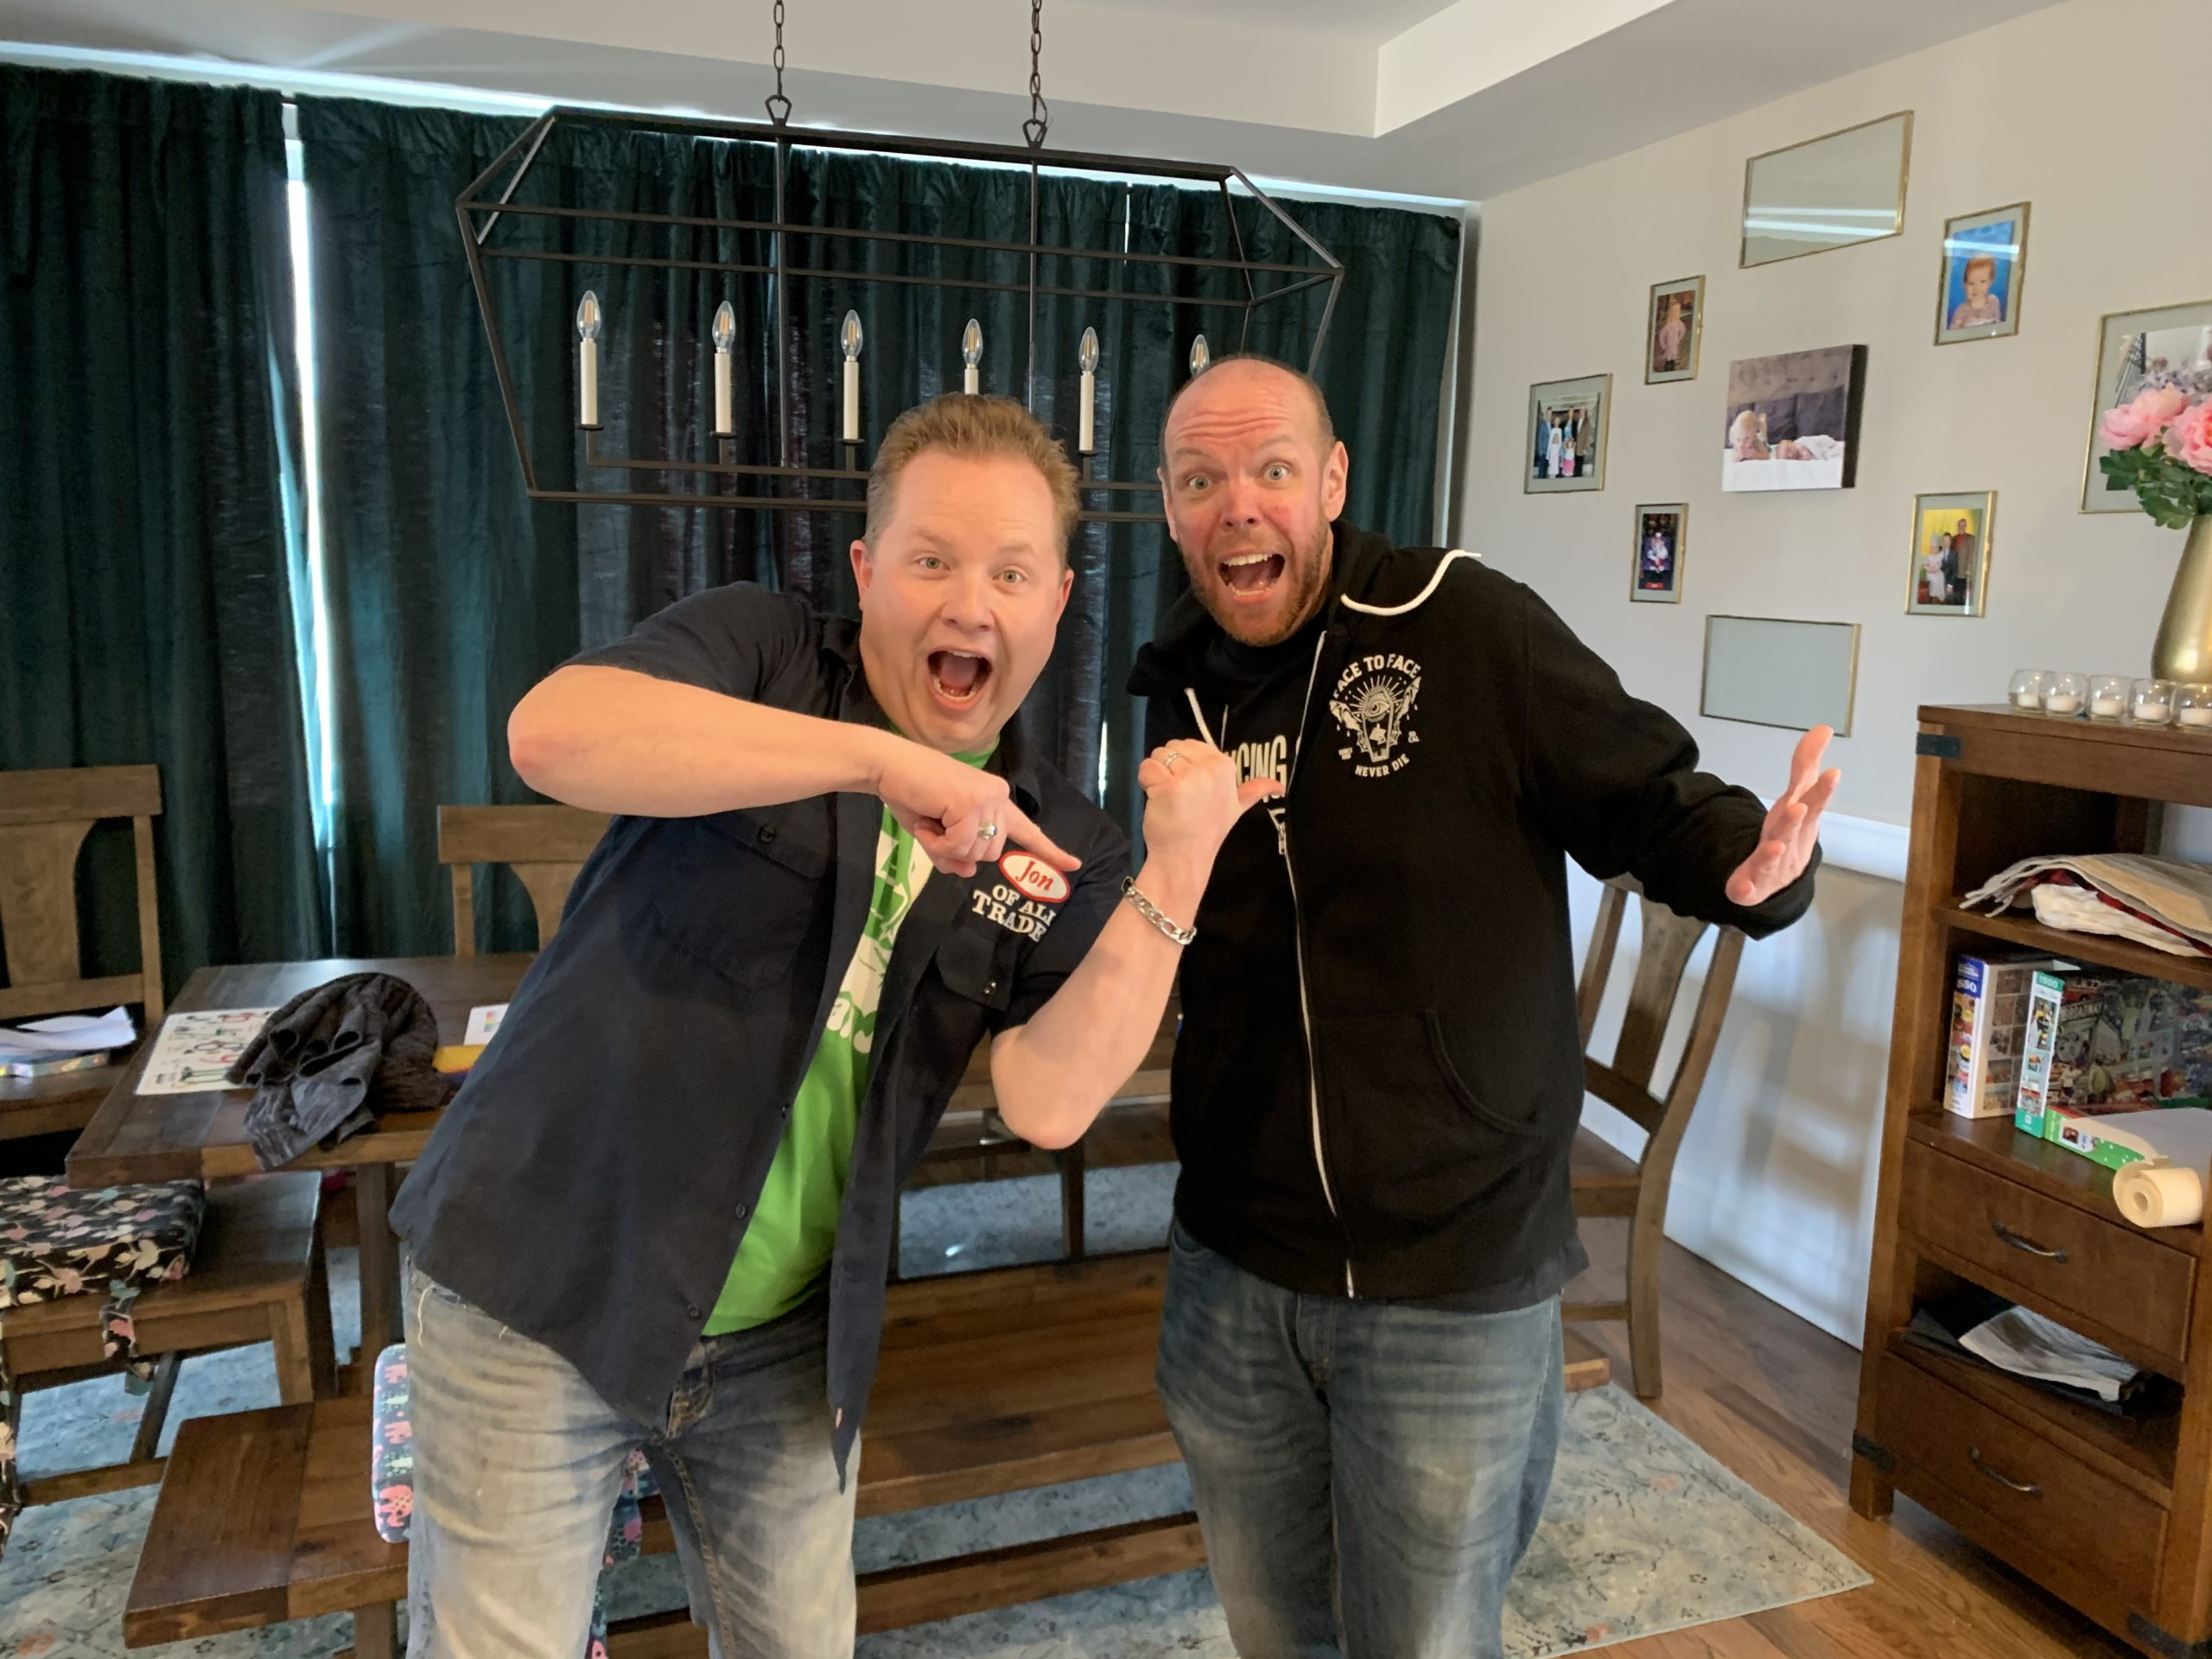 Jason Taylor is my best friend, writing partner, and creative muse. He's the guest on the 7-year anniversary, Ep. 285, of the Jon of All Trades Podcast debuting on March 24, 2021.